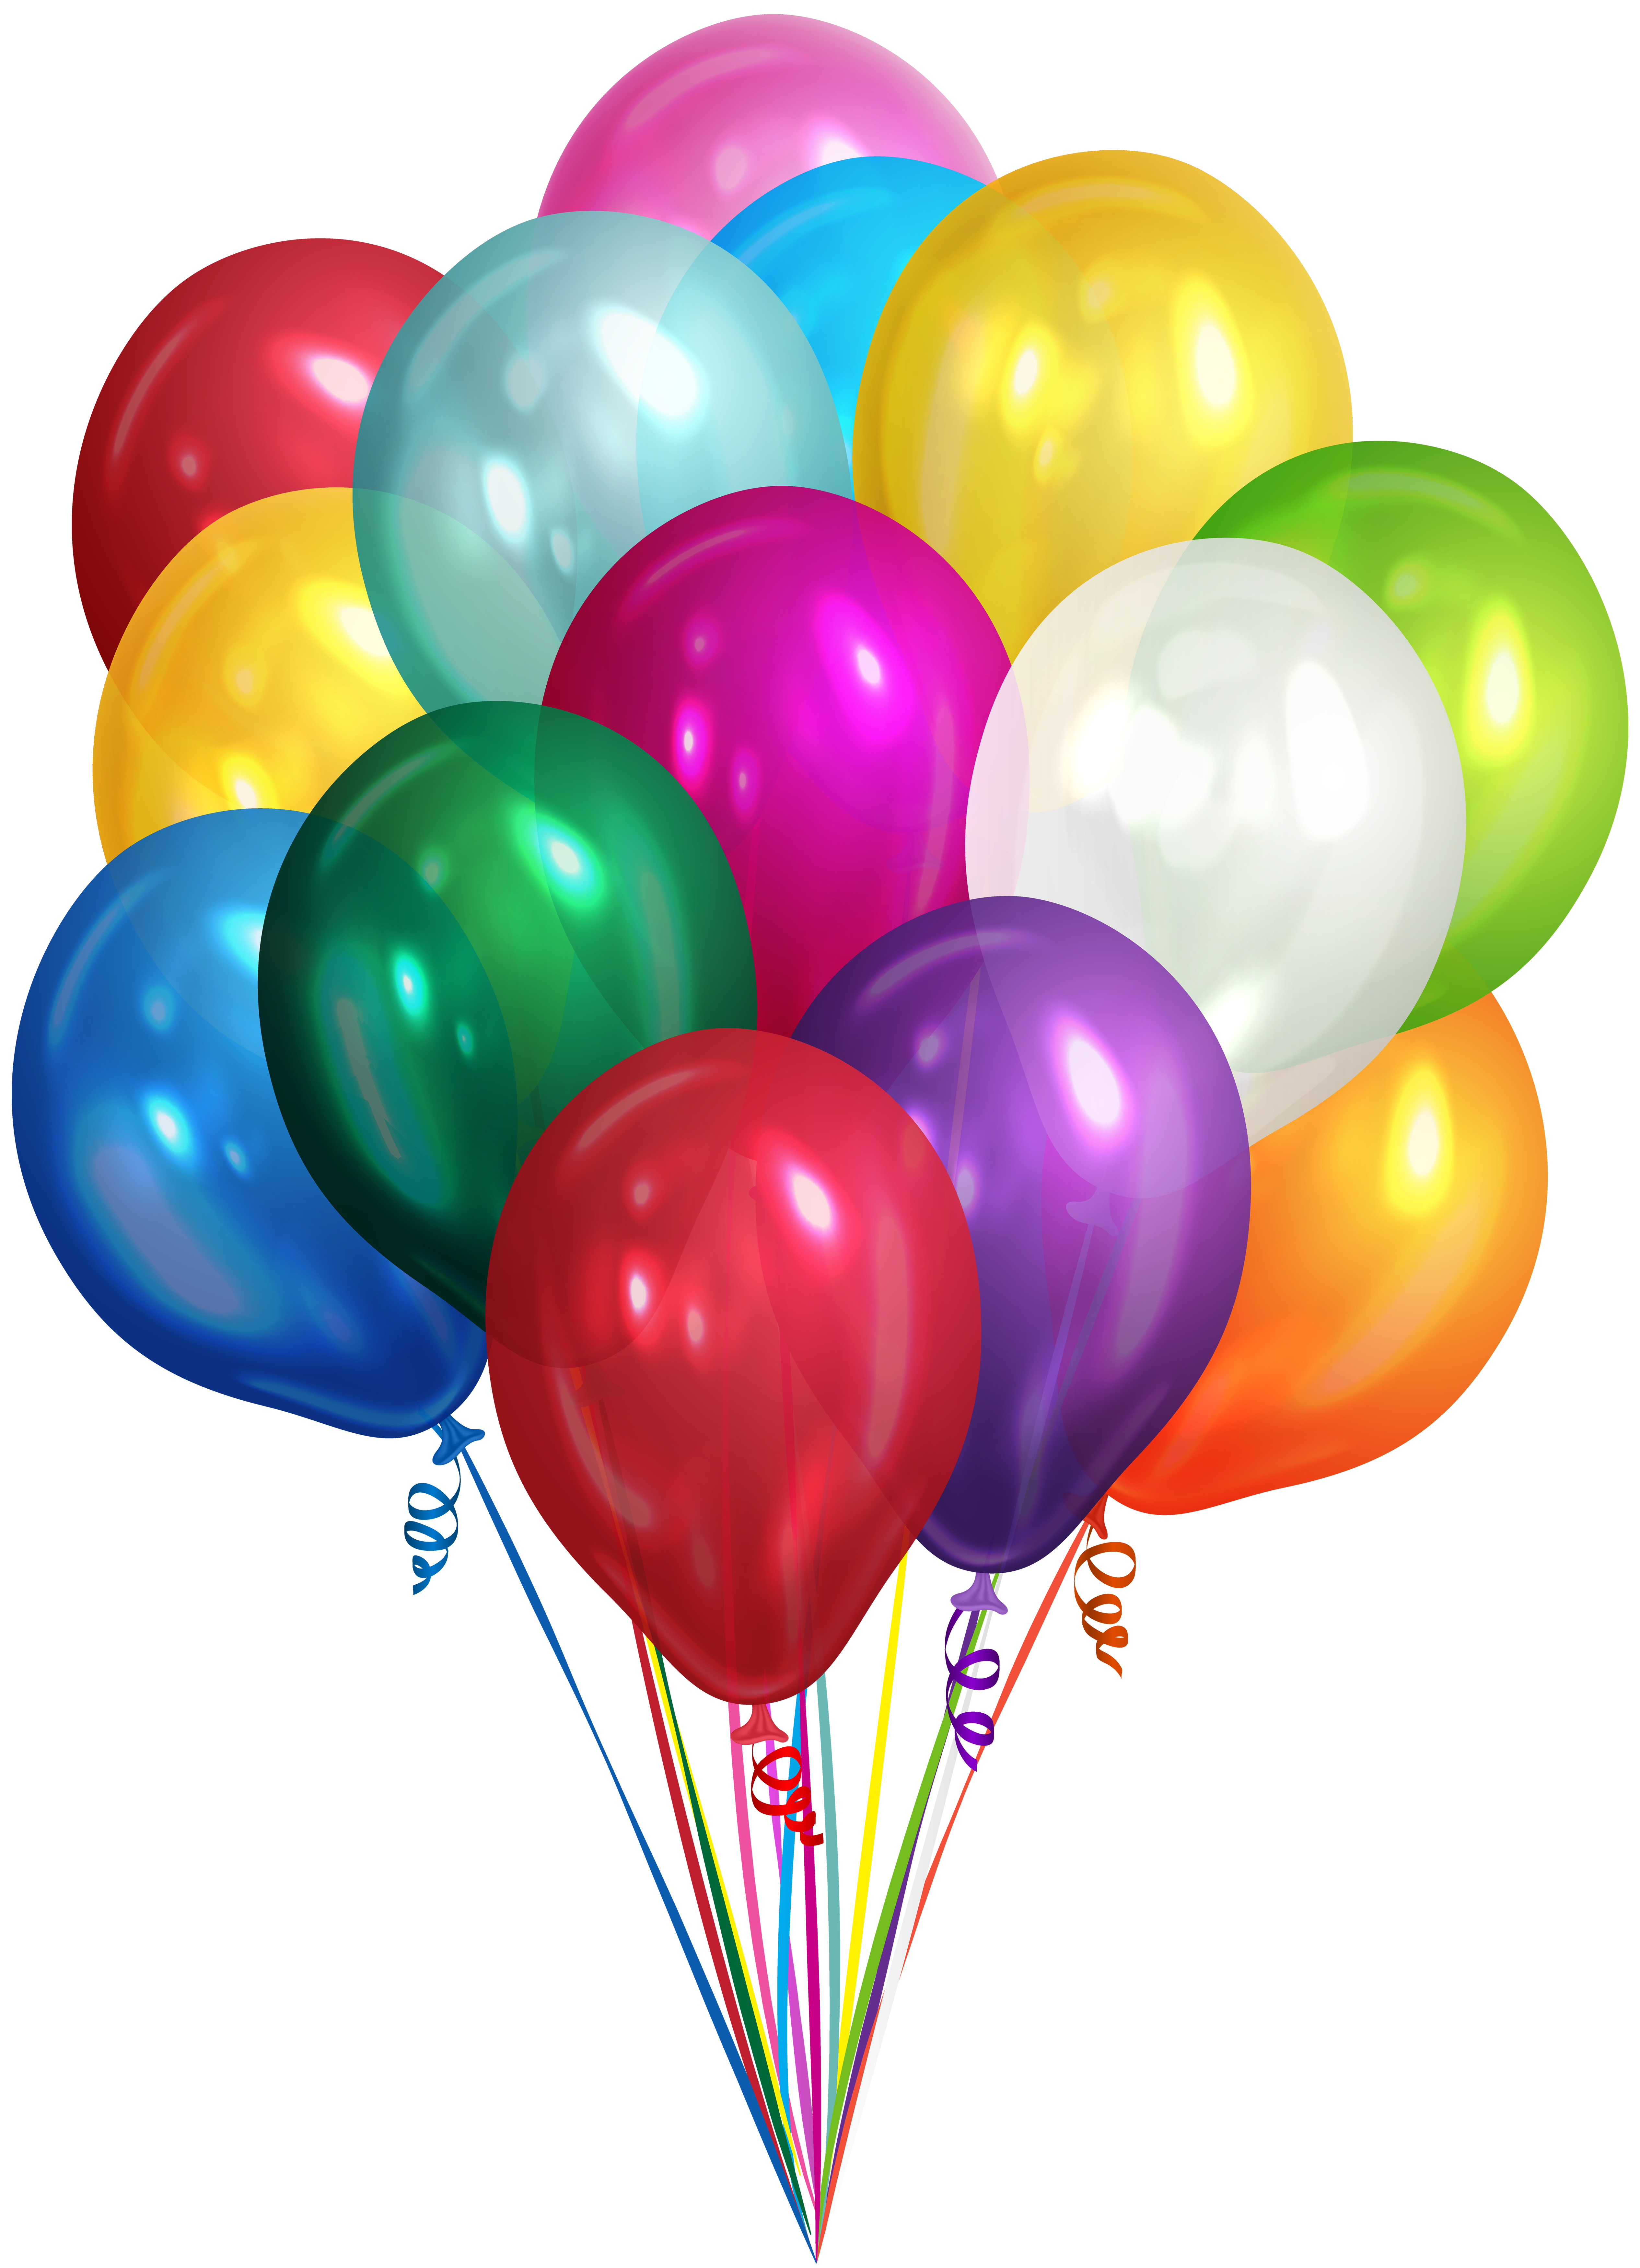 Clipart bunch of balloons clip art library stock Bunch of Balloons Transparent Clip Art PNG Image | Gallery ... clip art library stock